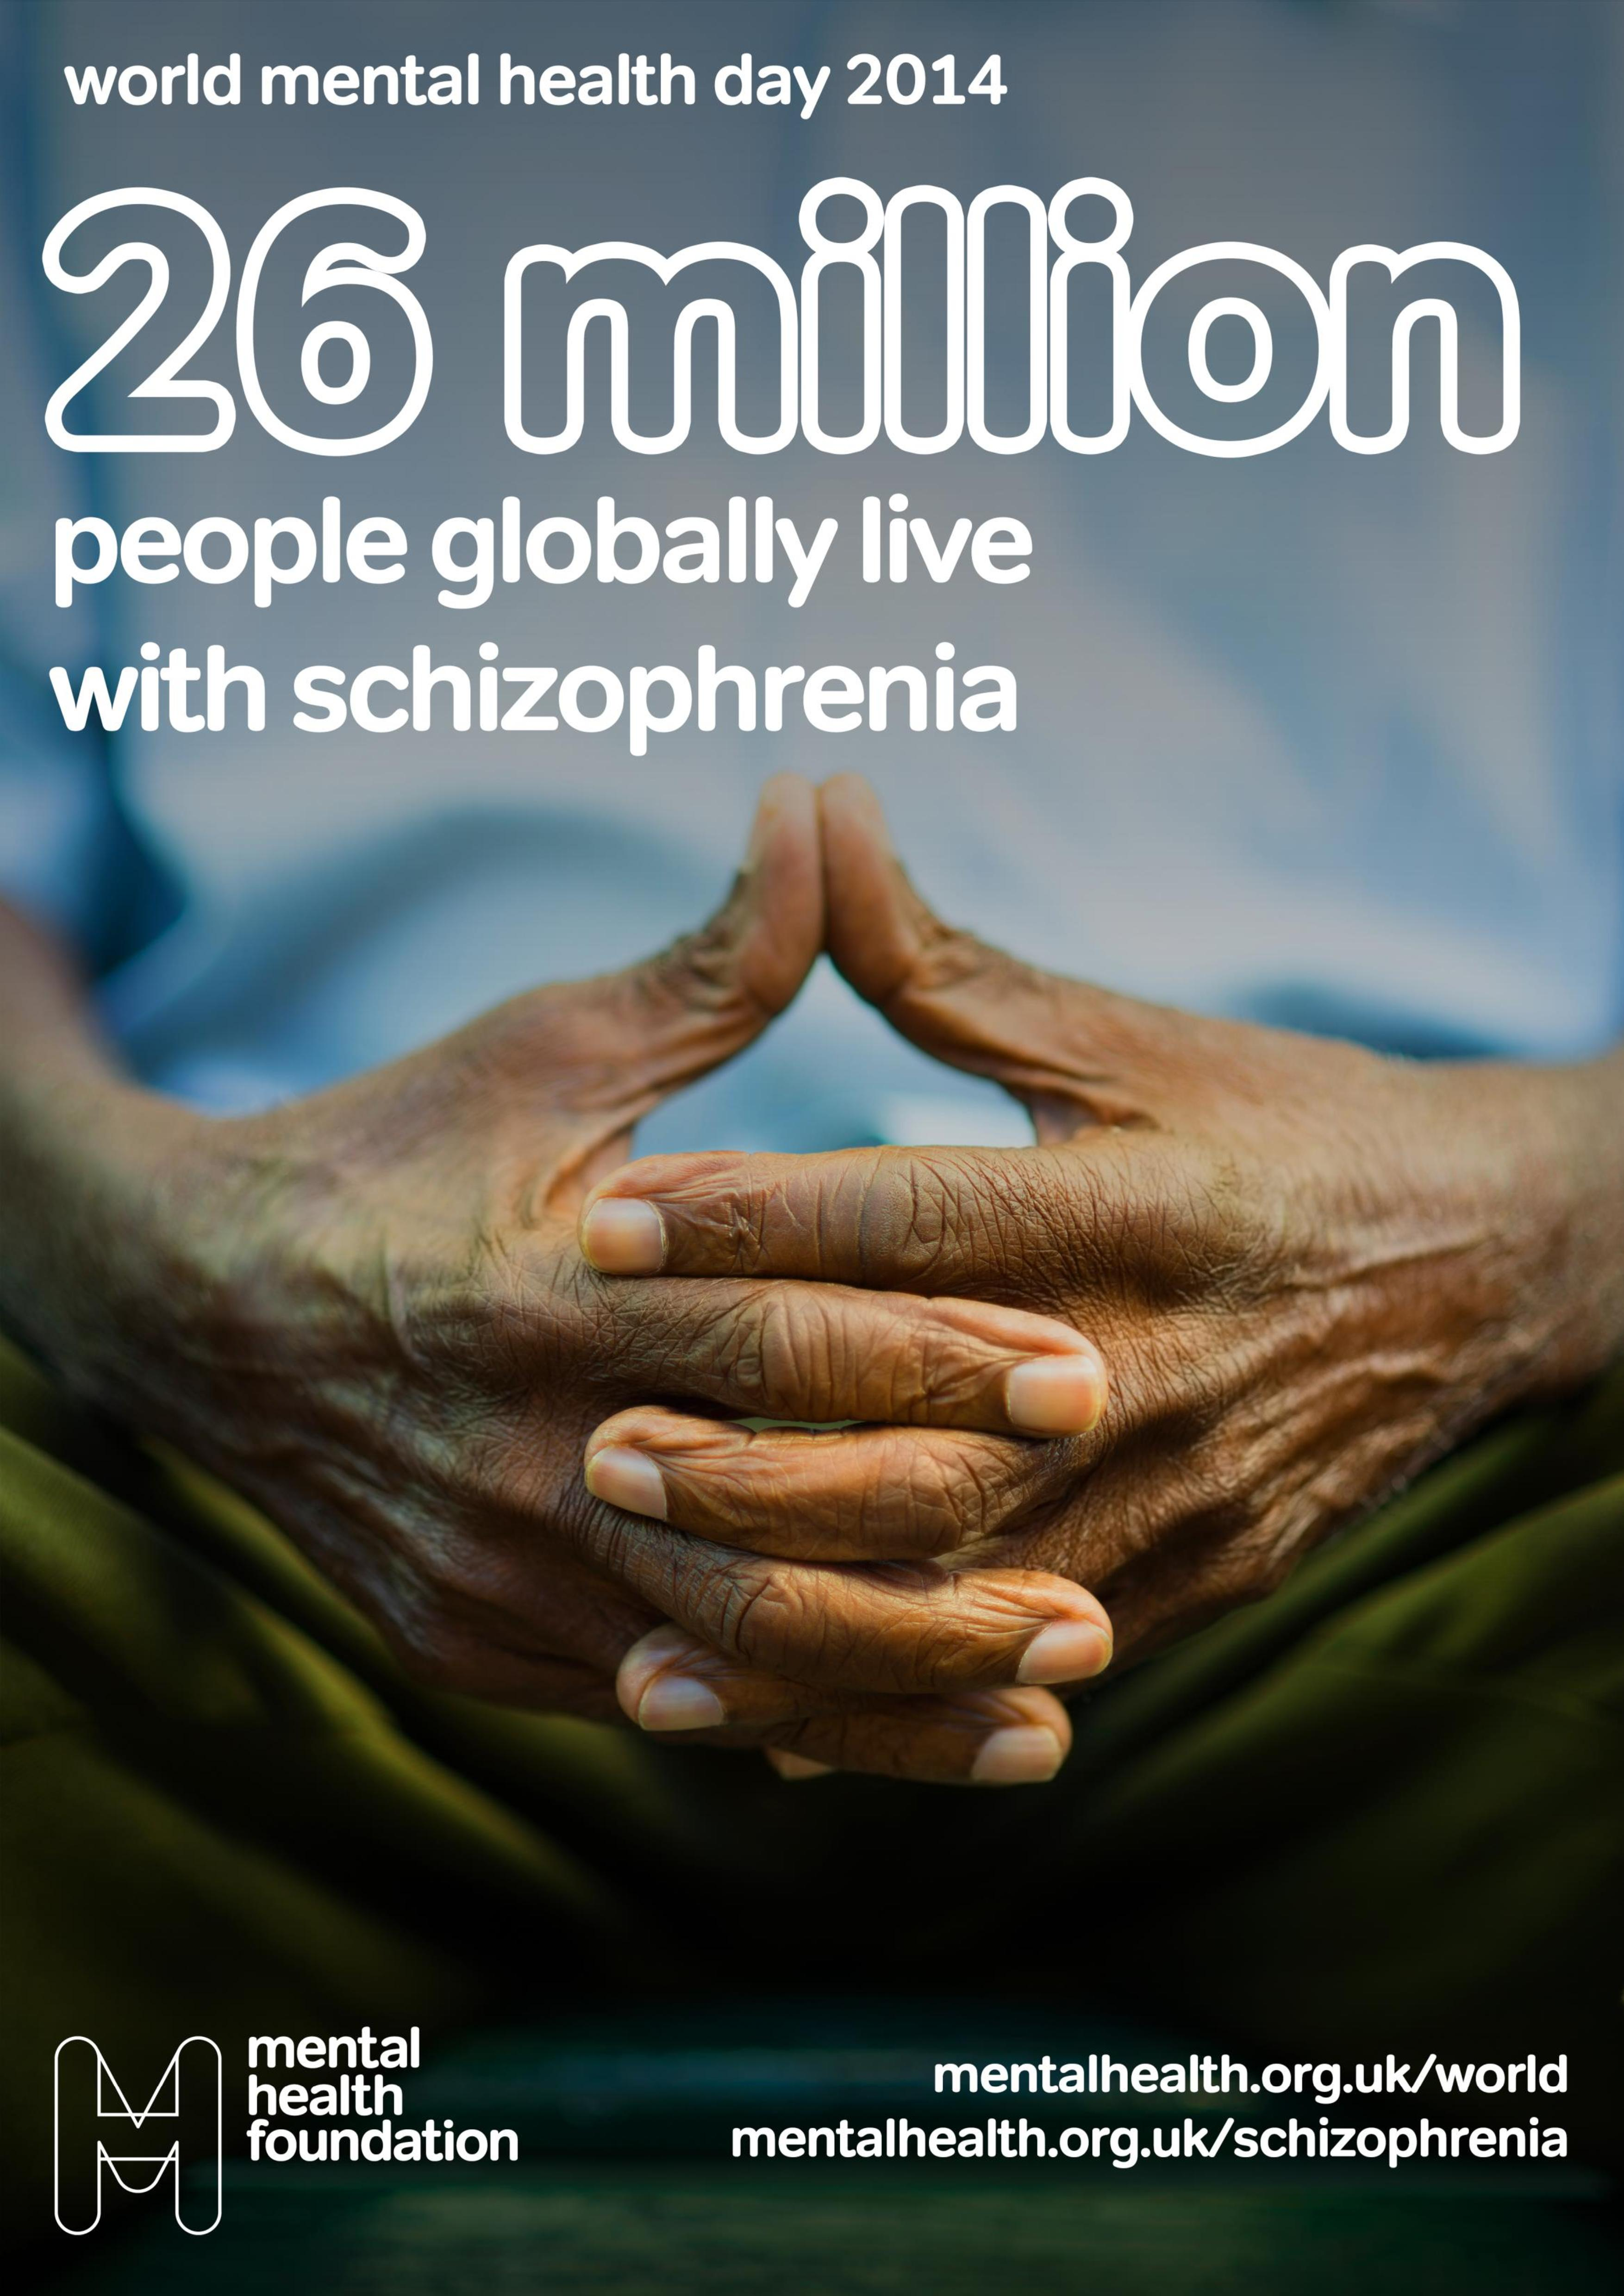 World Mental Health Day 2014 This Years Theme Is Shining The Spotlight On Schizophrenia Raise Awareness And Find Out More About In